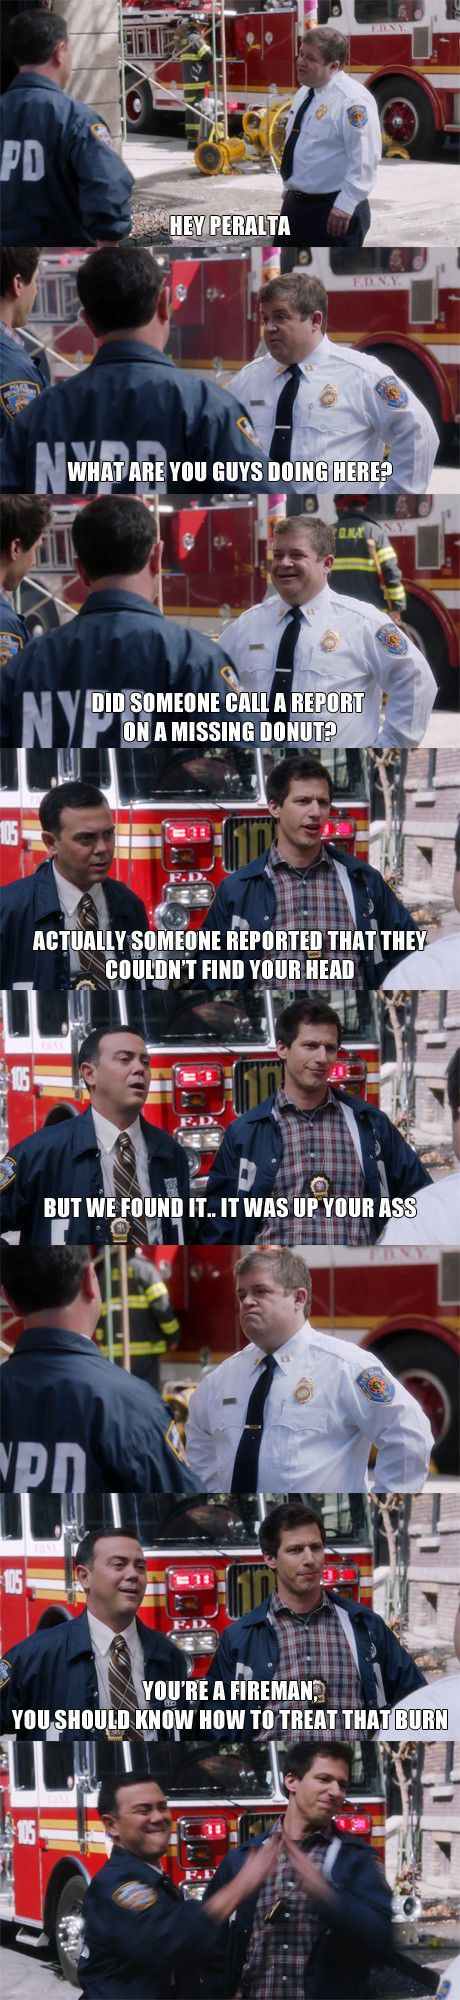 Brooklyn Nine Nine is great!